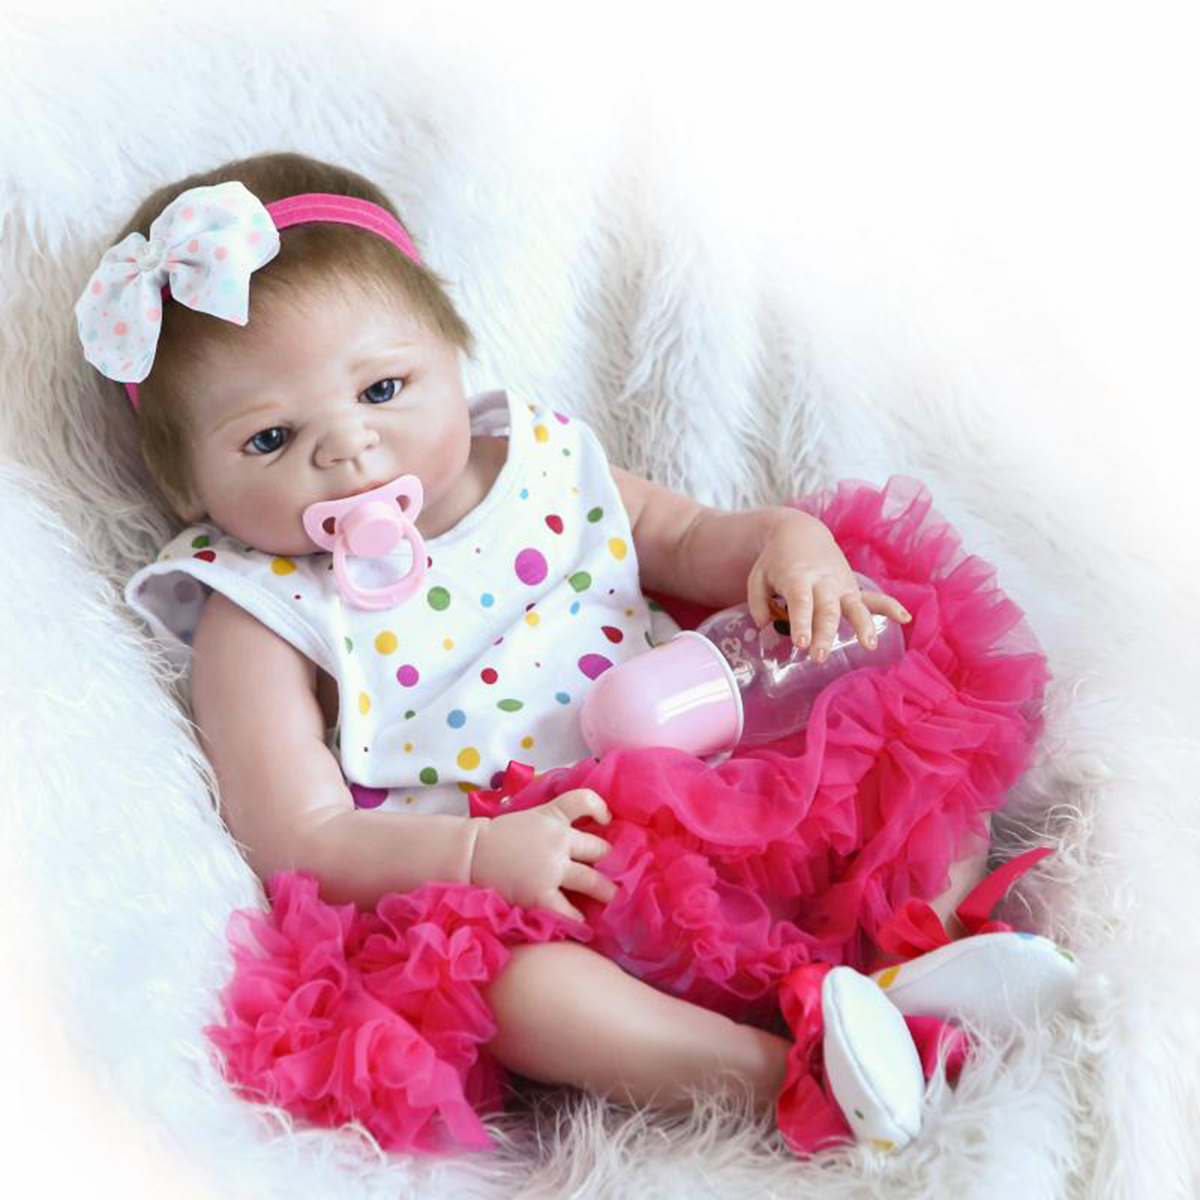 22inch Reborn Baby Doll Handmade Lifelike Newborn Girl Doll Play House Toys